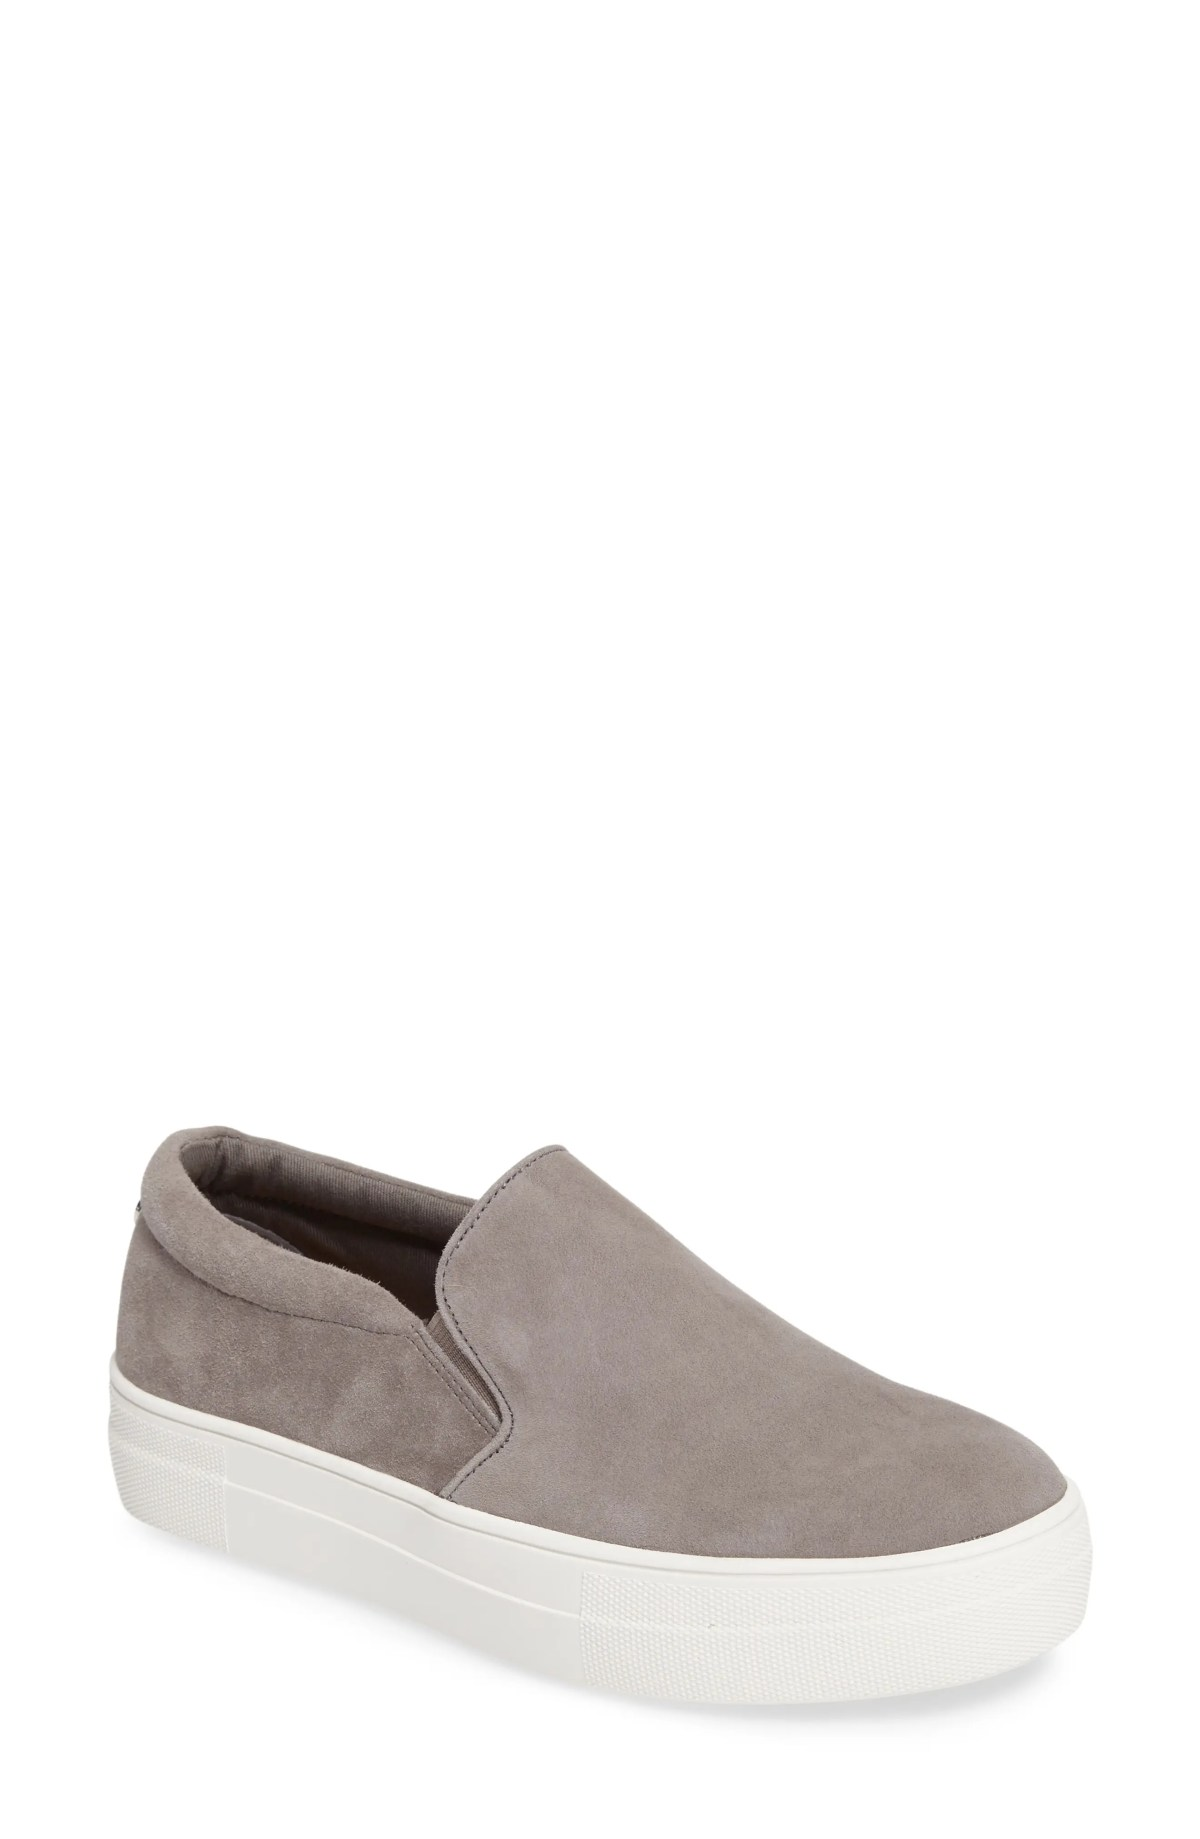 STEVE MADDEN Gills Platform Slip-On Sneaker, Main, color, GREY SUEDE